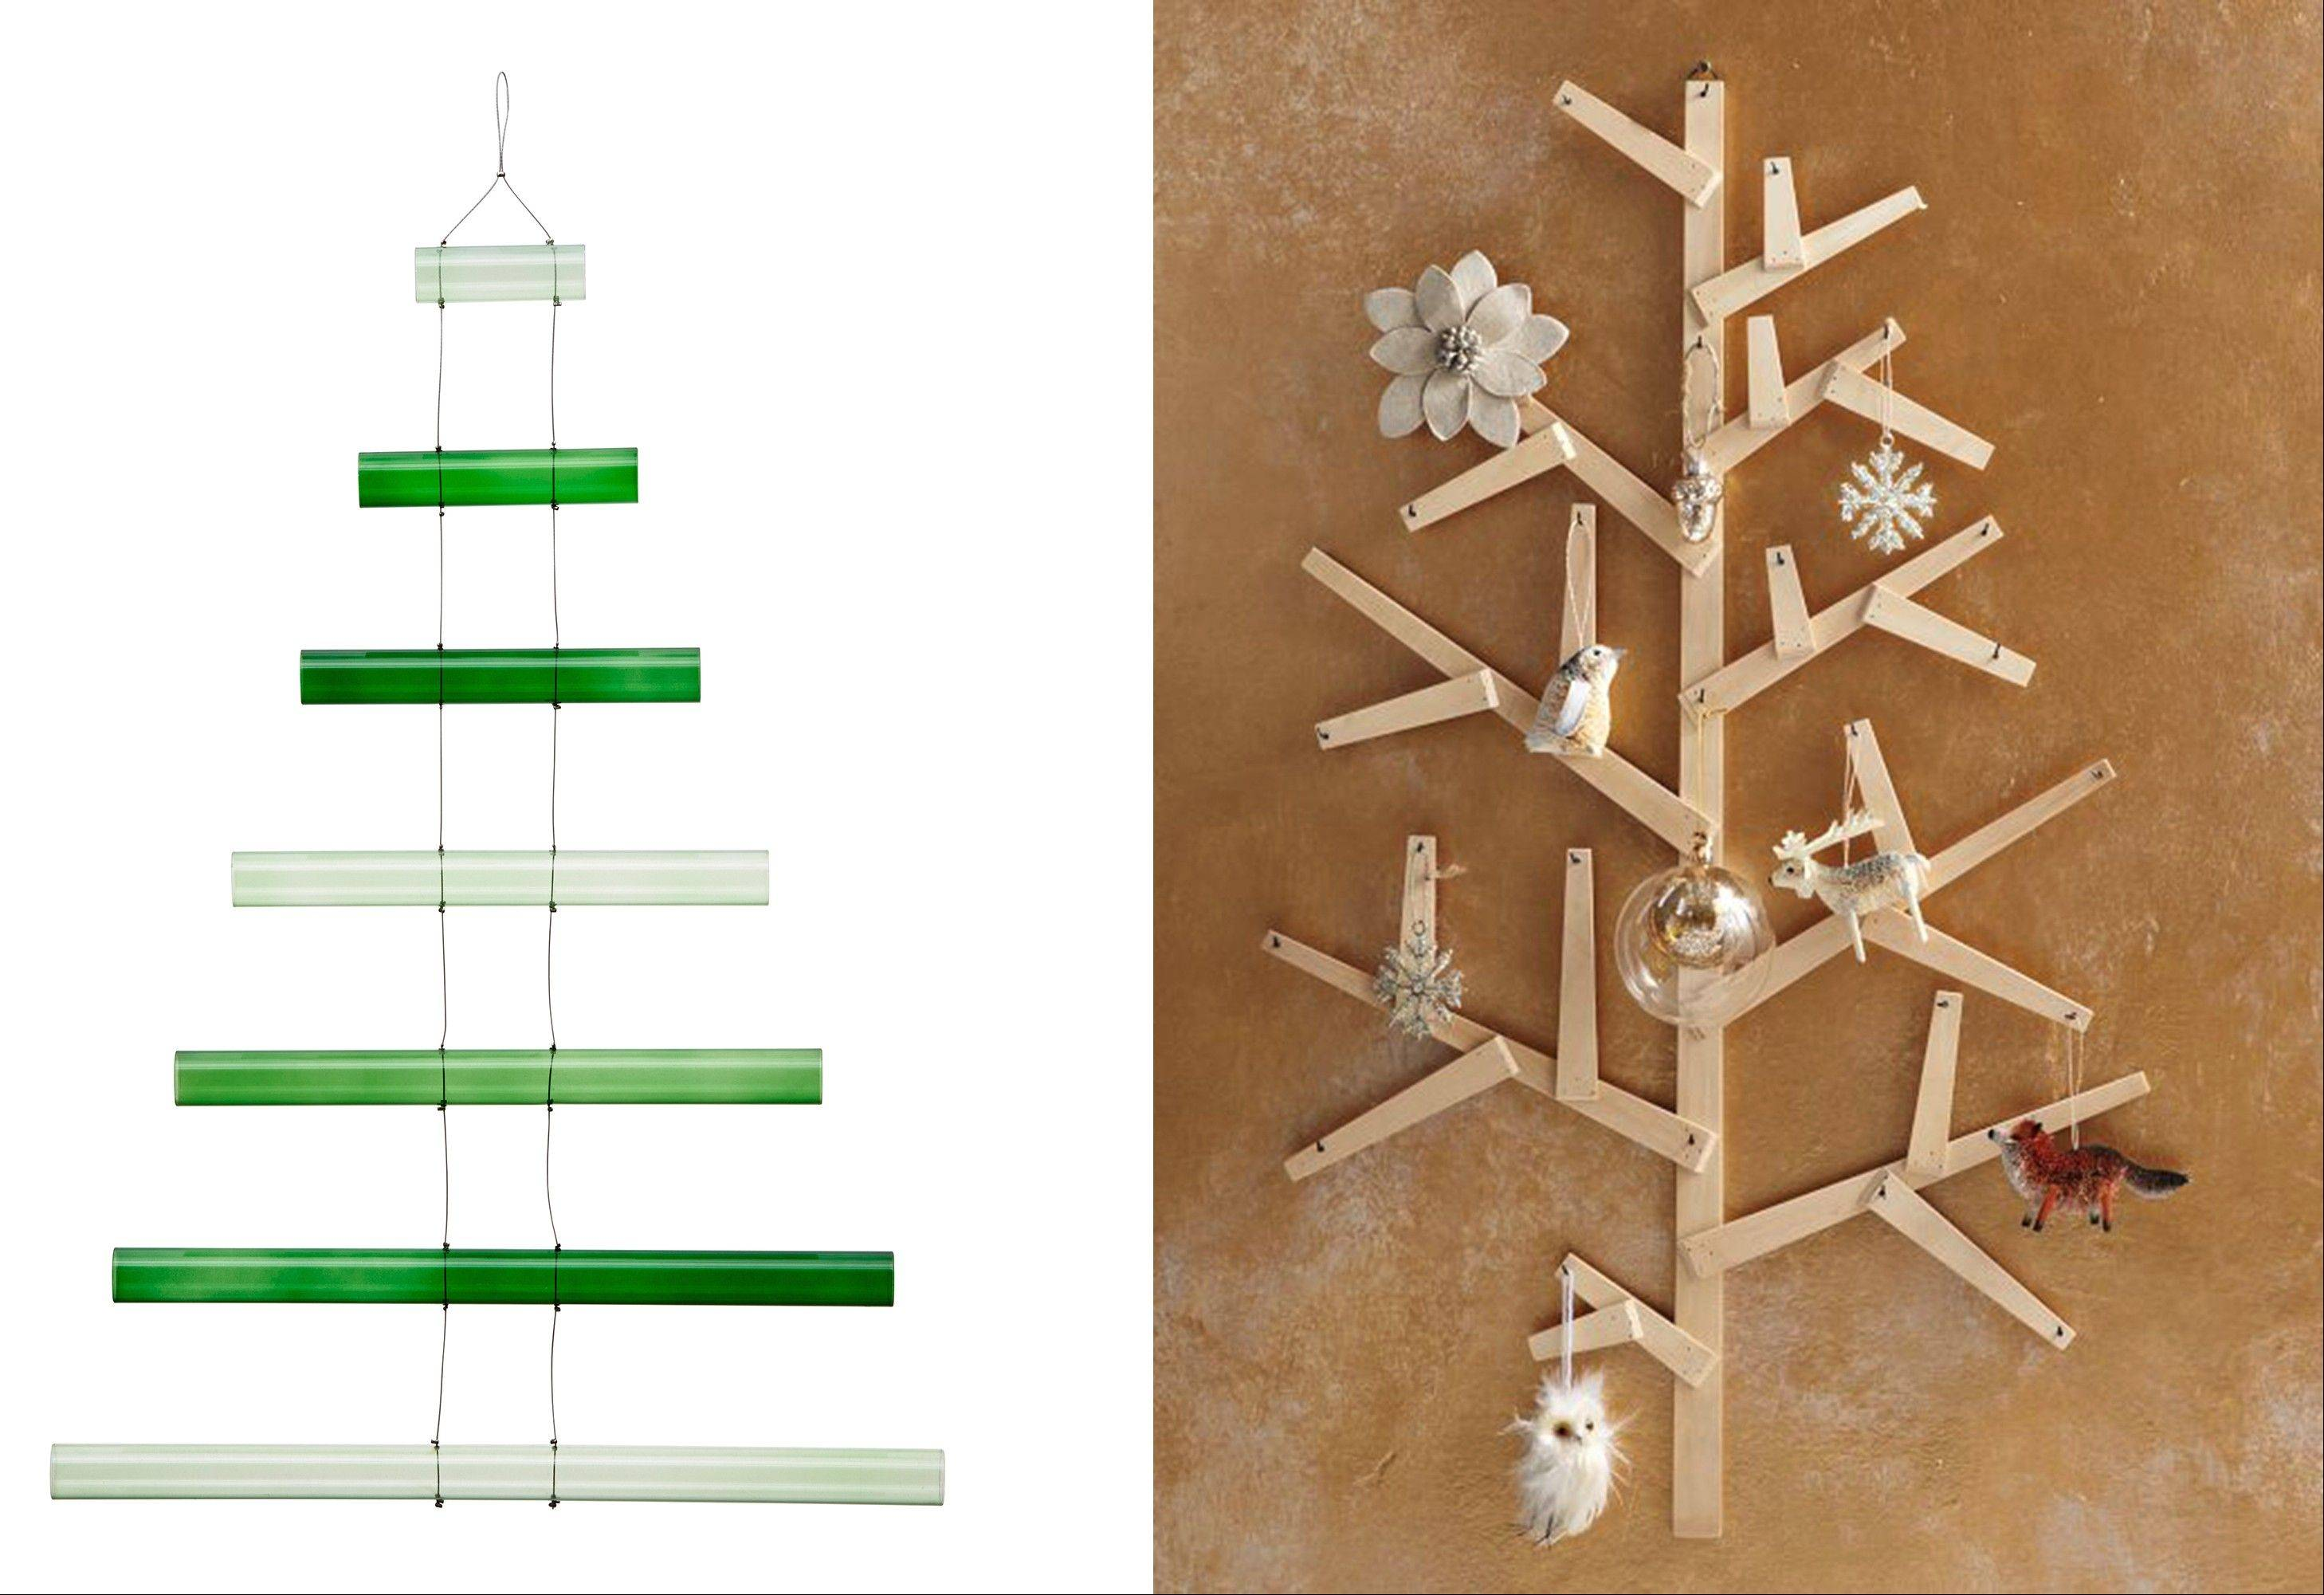 Who says Christmas trees have to be trees? There are alternatives, such as the Glass Rod Tree from CB2, left, and the Wooden Wall Tree from West Elm, which is infinitely personalizable.